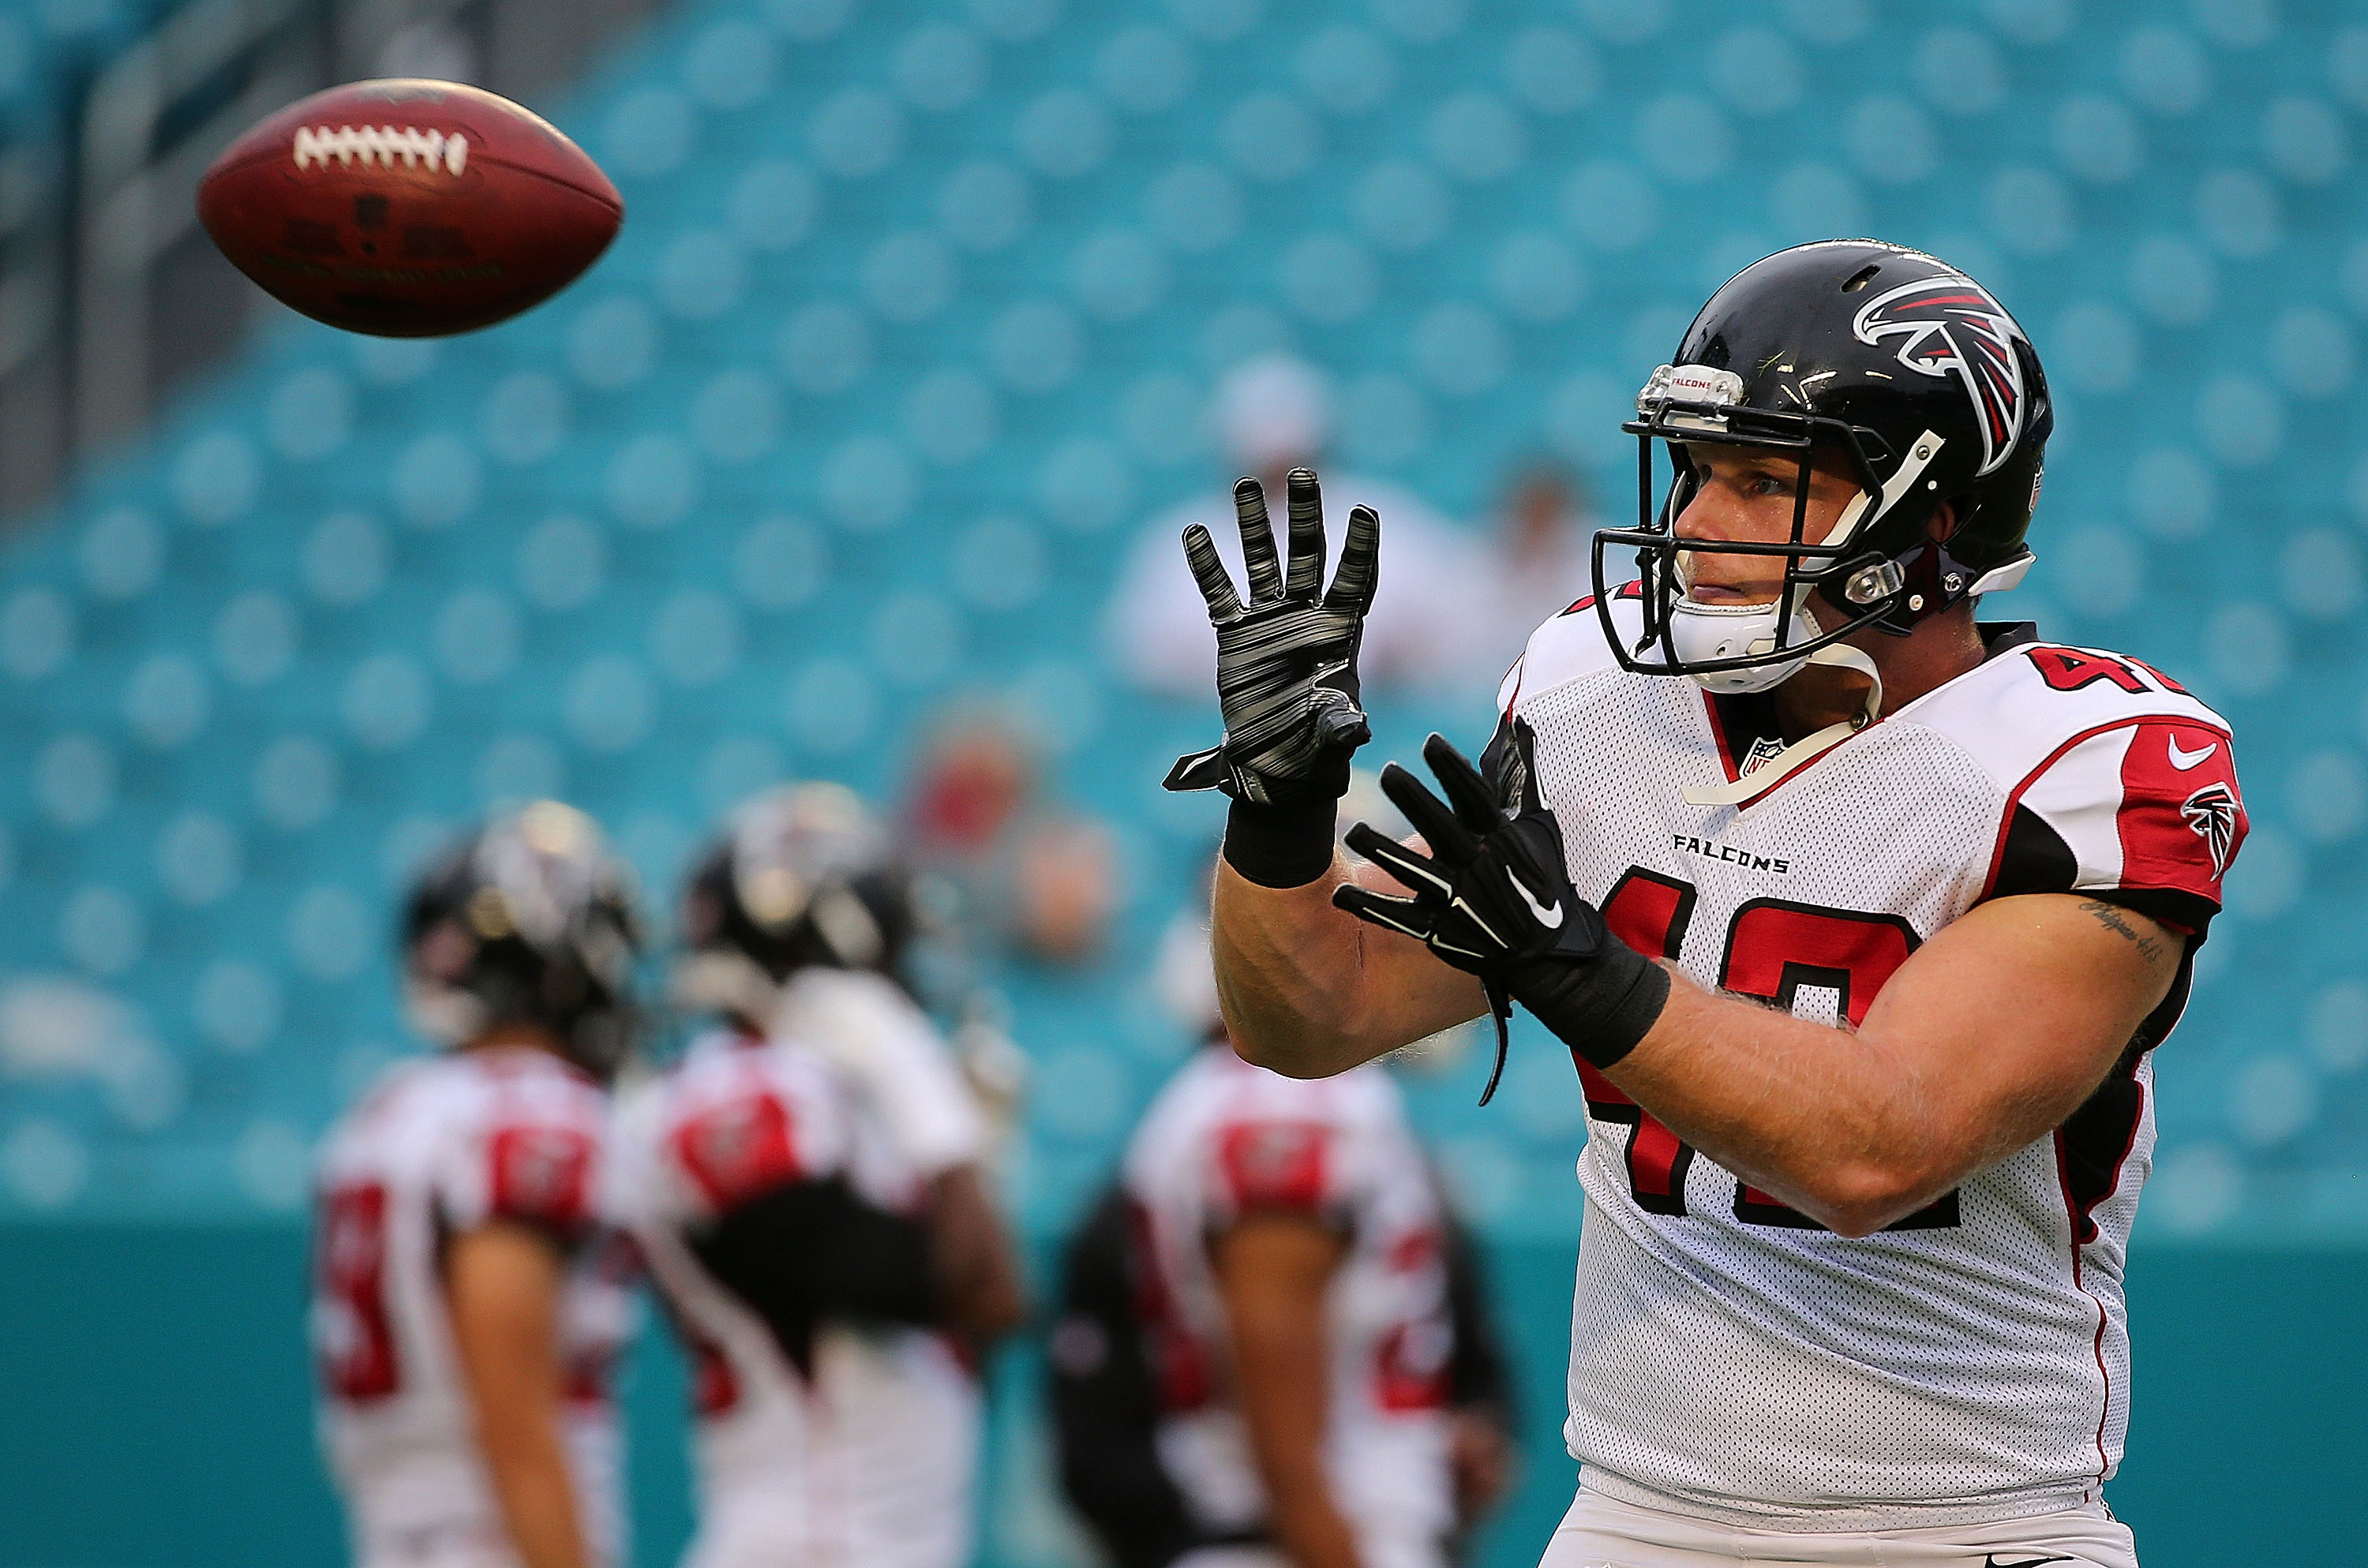 Patrick DiMarco finished the 2016 season as the best run-blocking fullback in the NFL, according to one analytics website. (Getty Images)